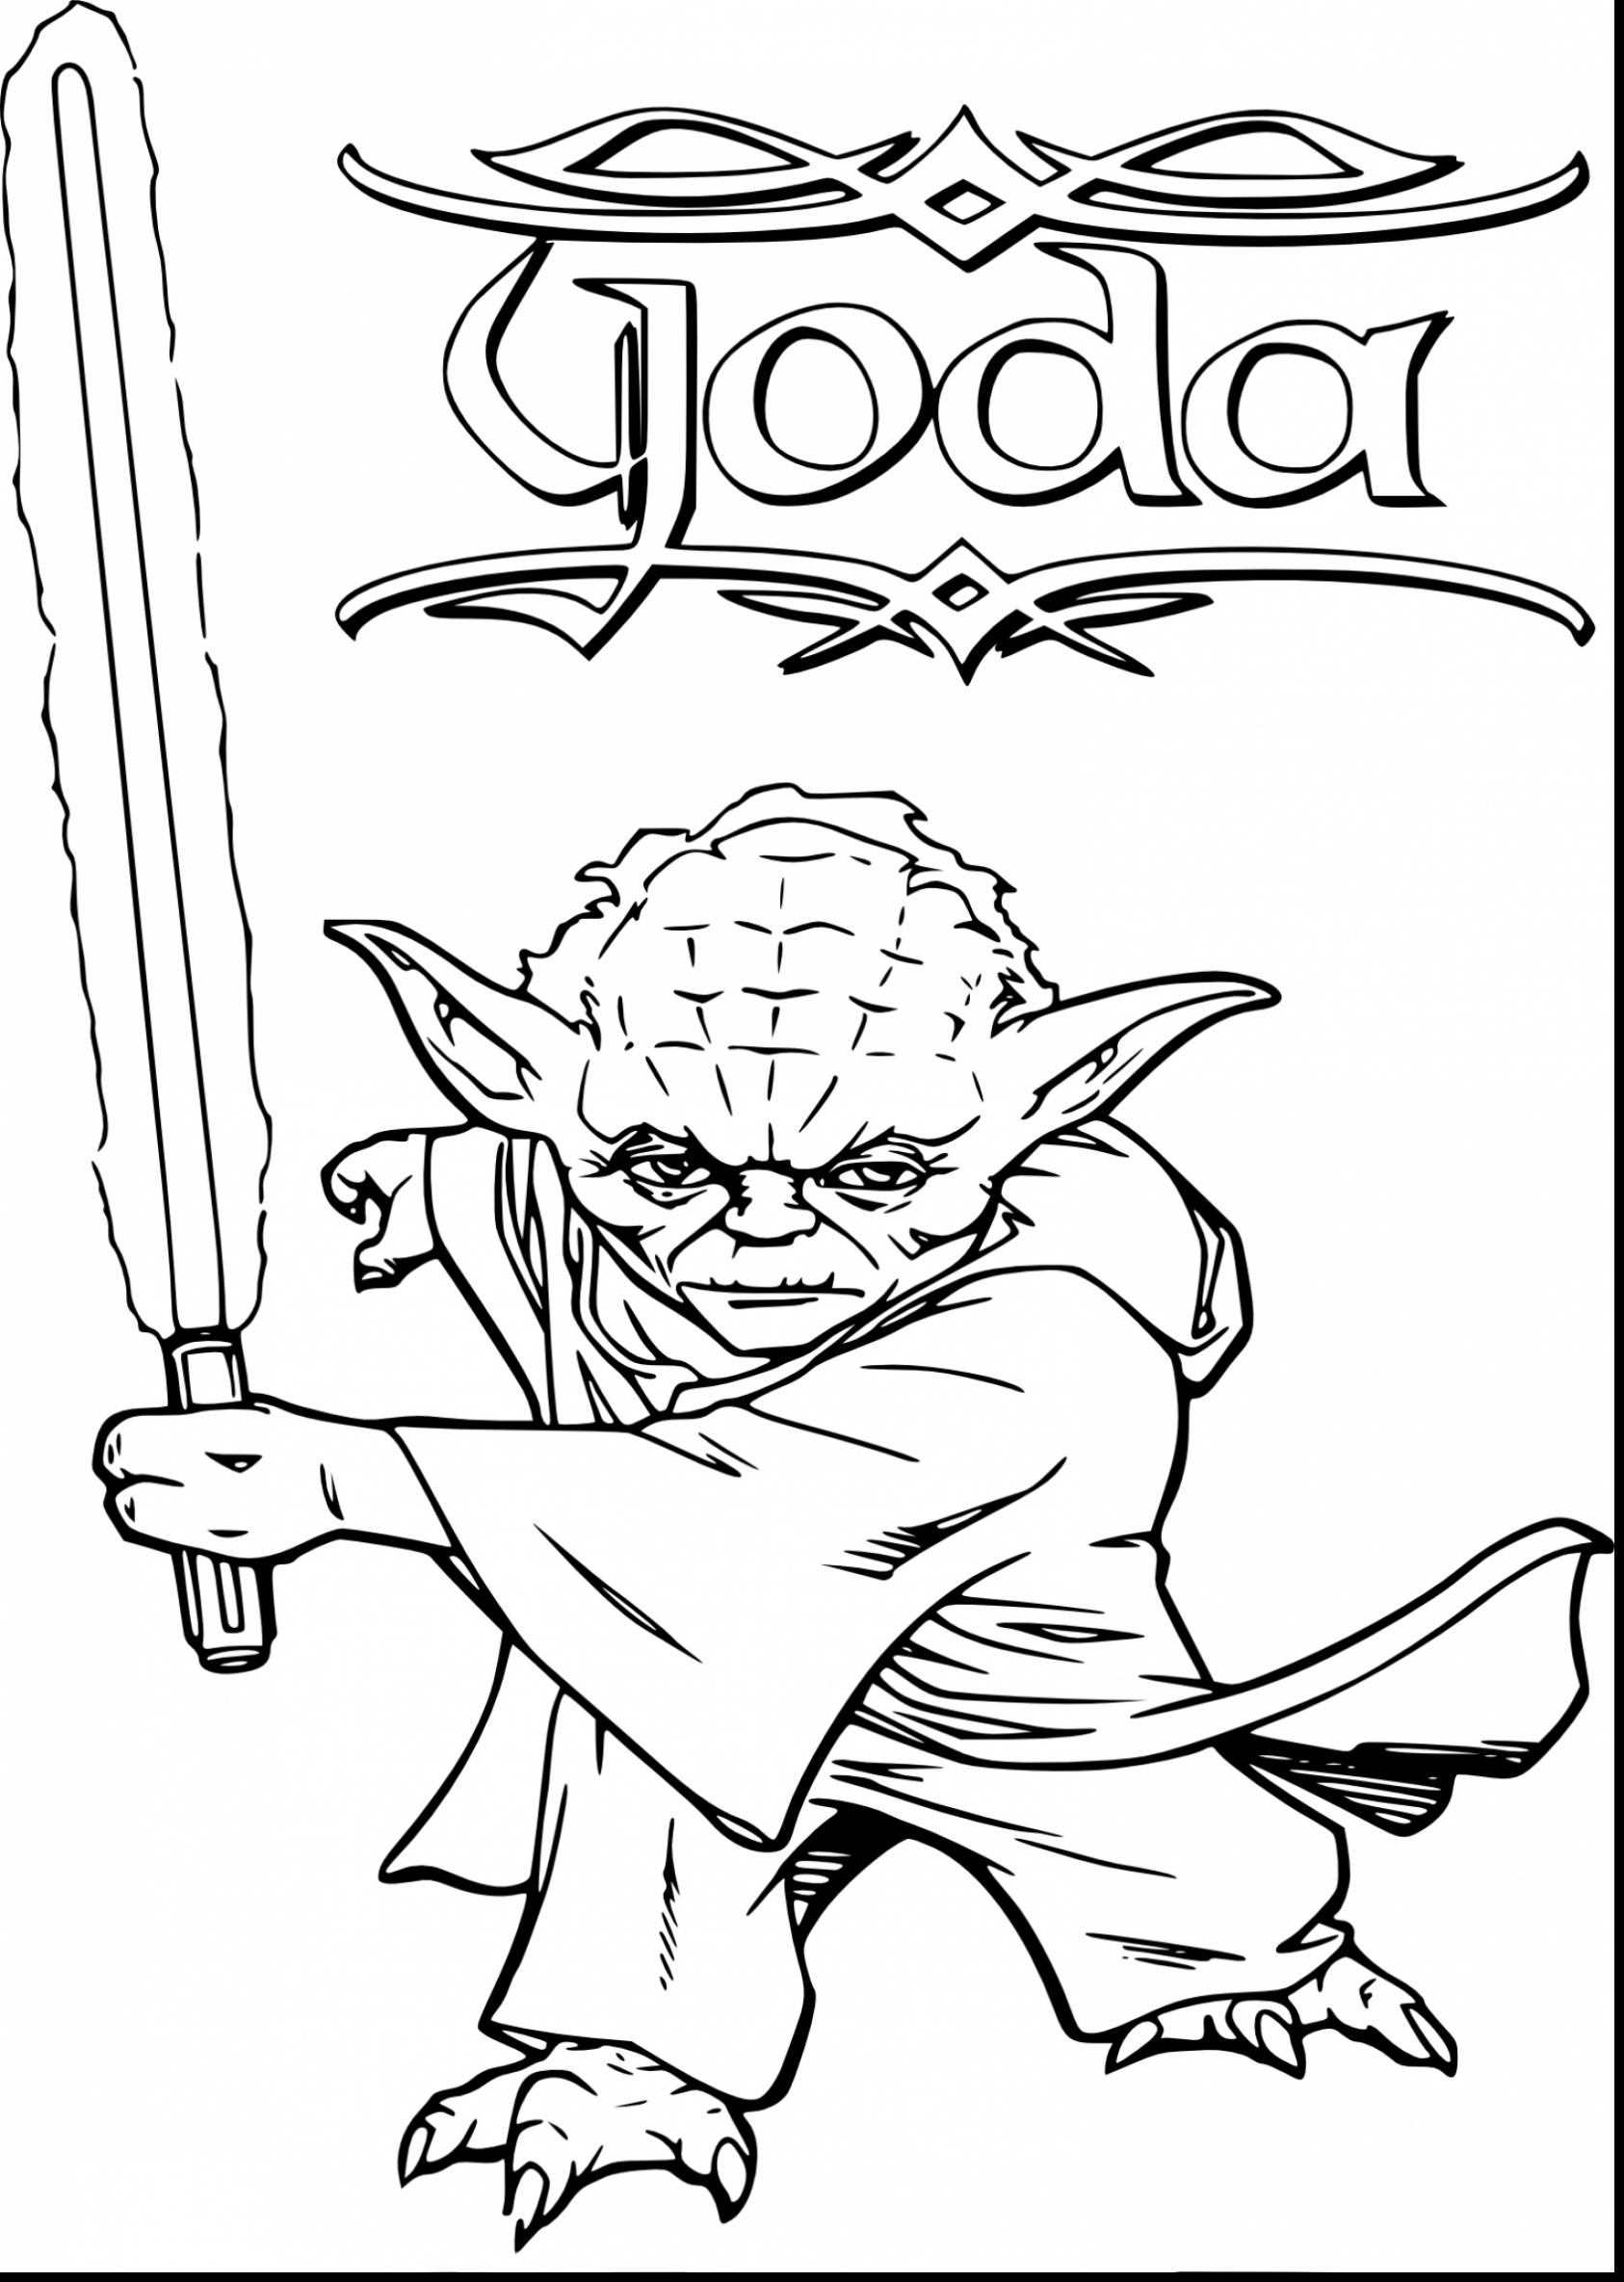 Printable Lego Star Wars Yoda Coloring Pages Printable to Pretty Printable Of New Coloring Pages Star Wars Printable